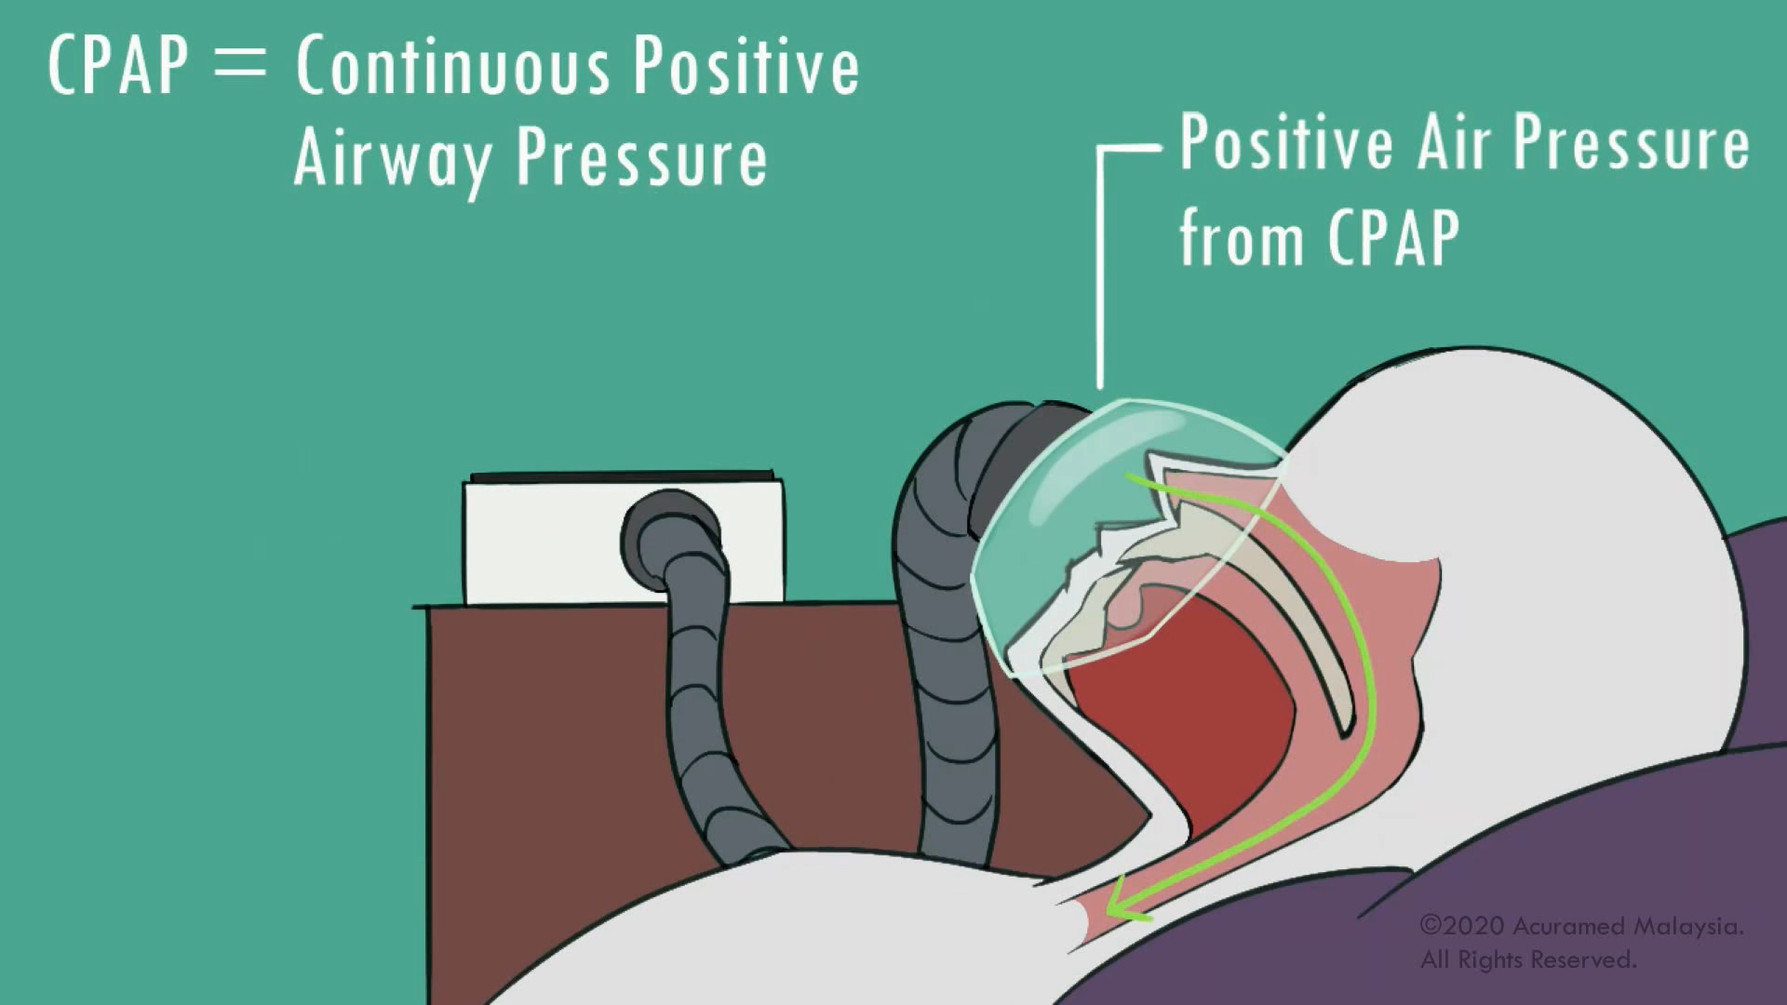 Benefits of CPAP.mp4